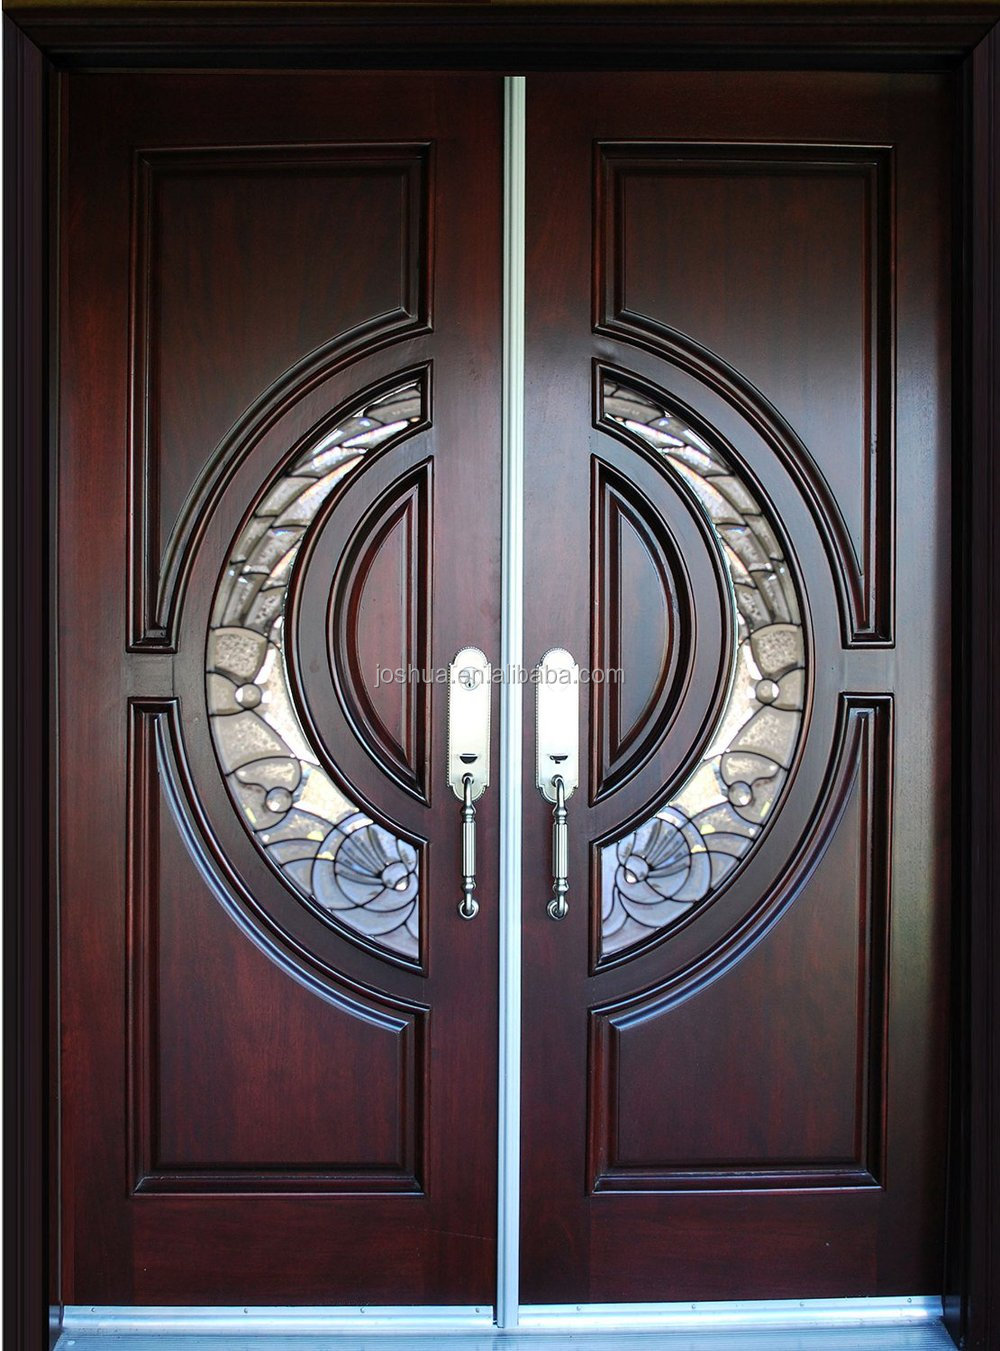 100 Mahogany Tiffany Wood Door Exterior Front Entry Double House Double Entry Wood Door Shipping Free Buy Double Entry Doorwood Door Double Entry